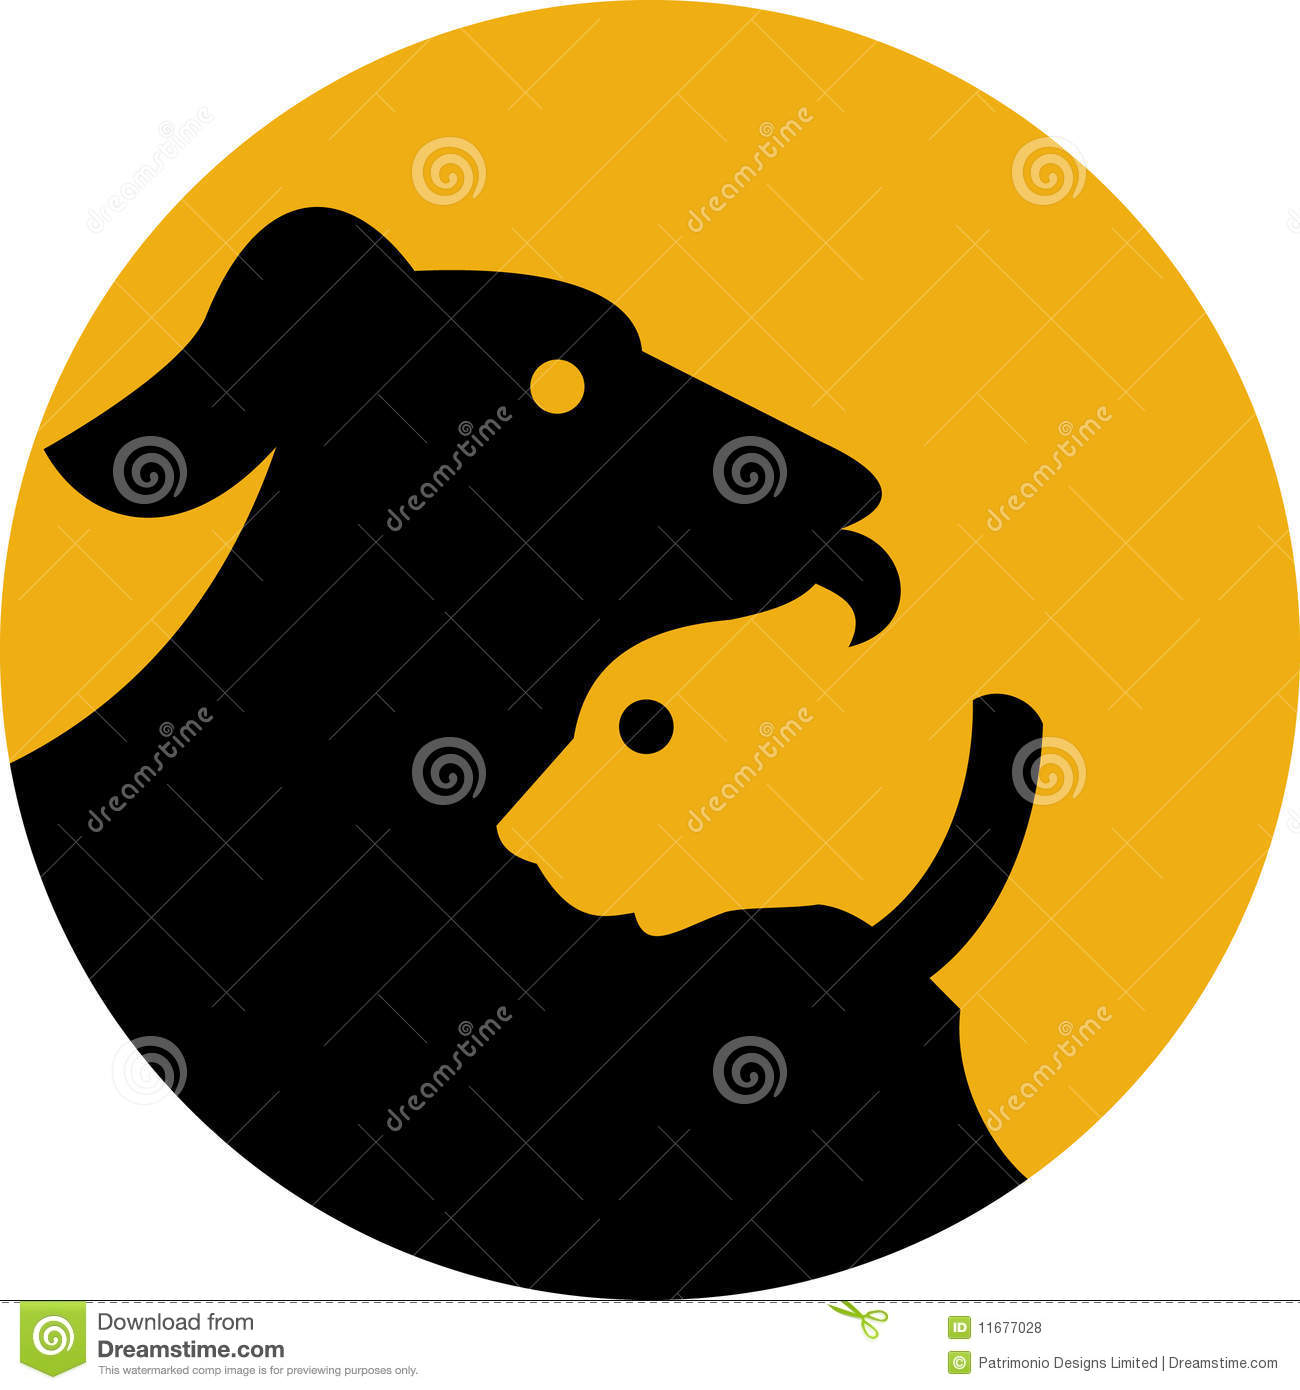 Pet dog and cat silhouette icon